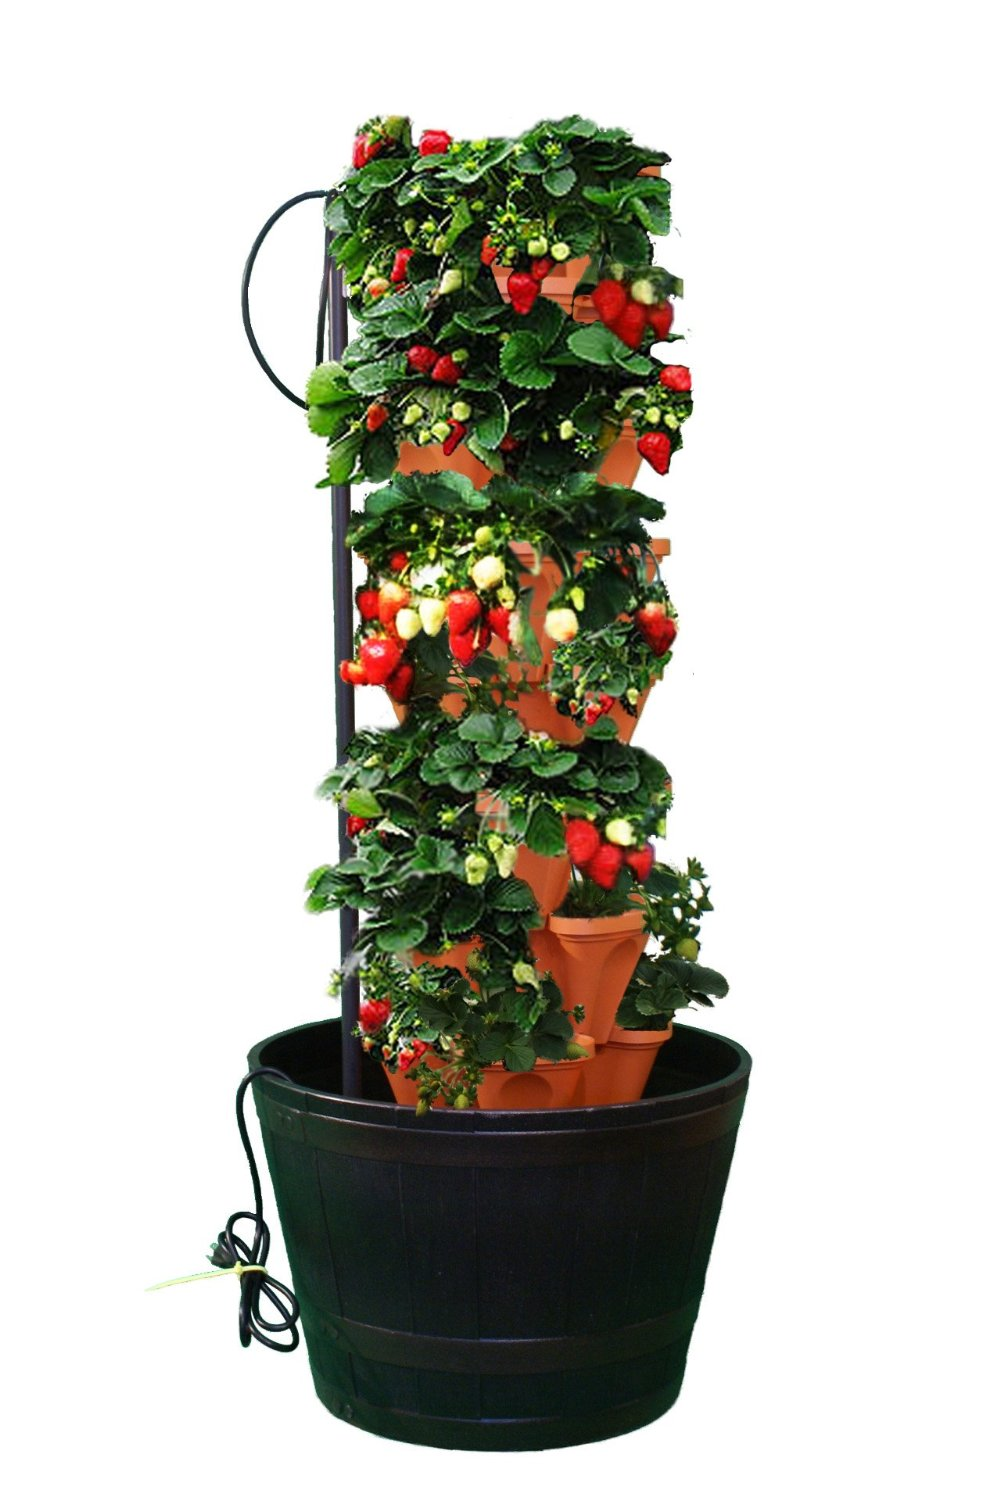 This links to a cheaper version of the Tower Garden than recommended on this show.